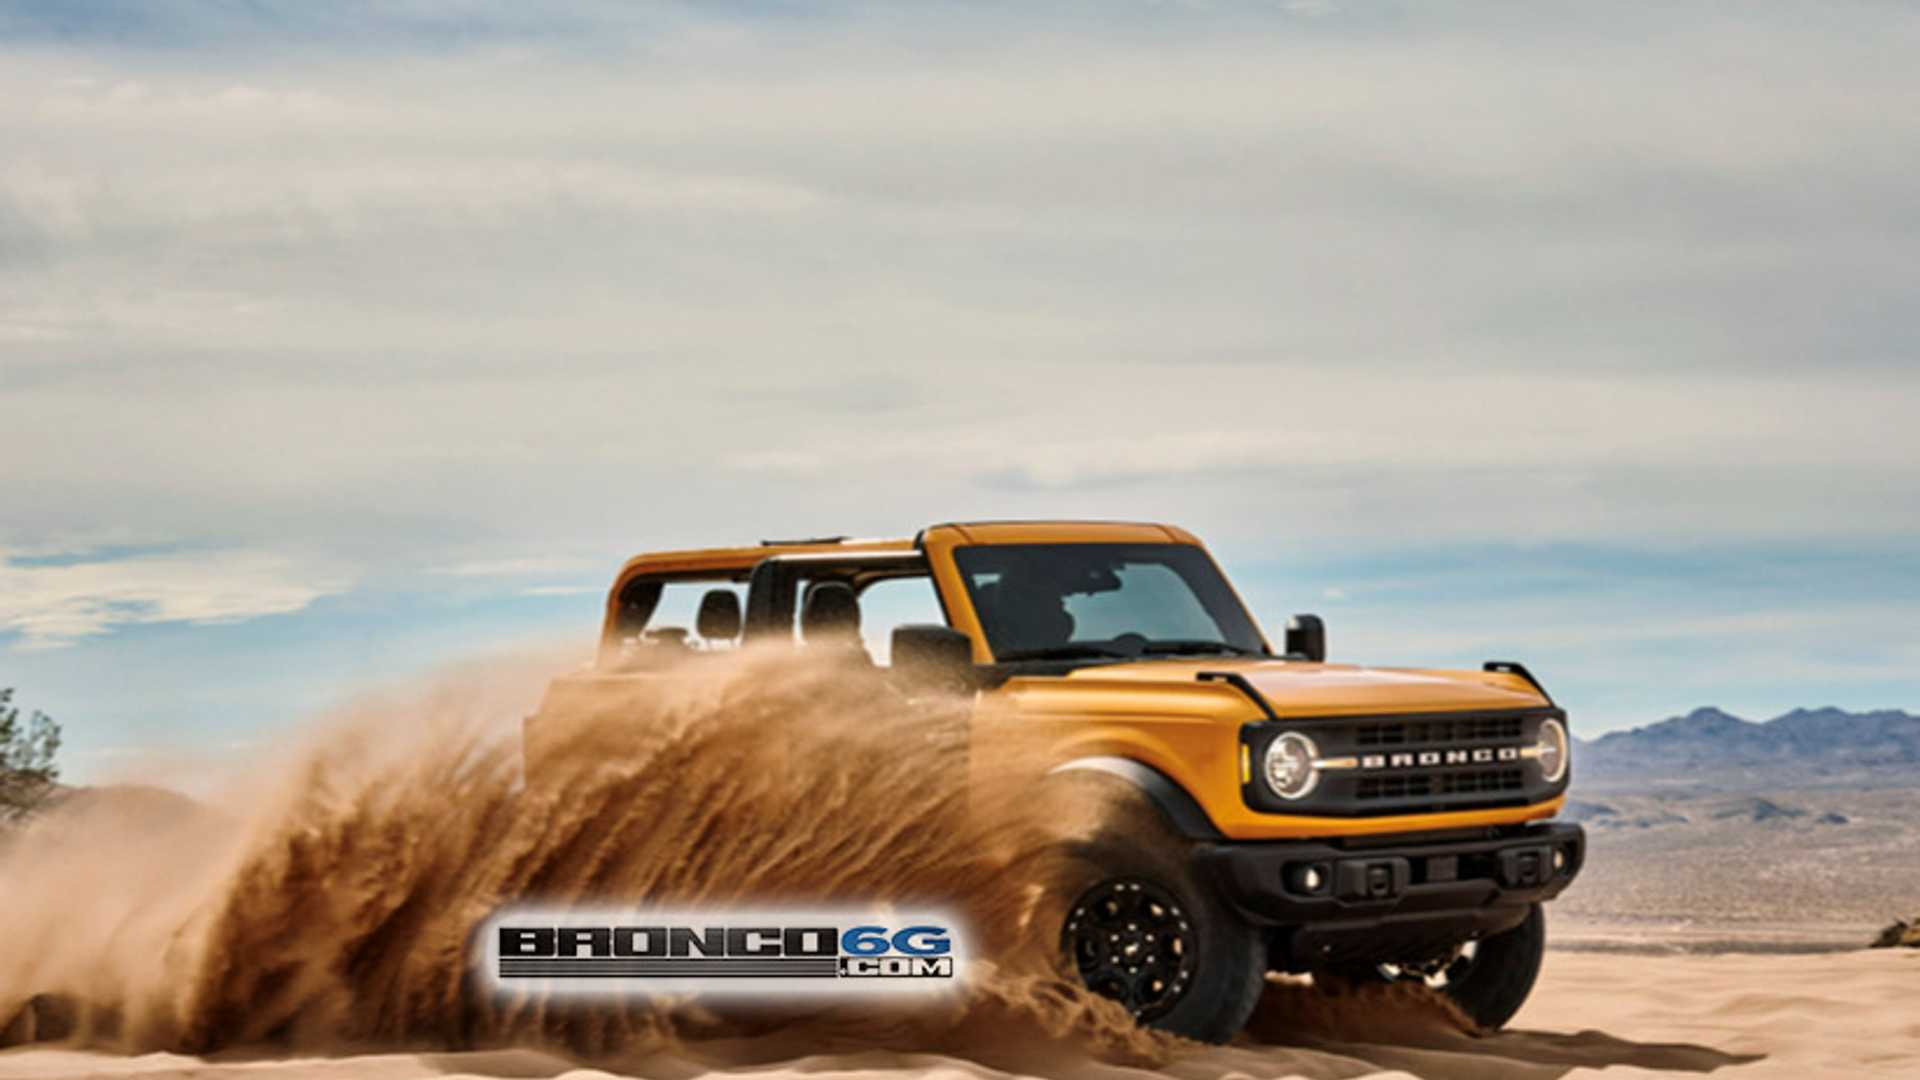 2021 ford bronco leaked showing off lack of roof and doors